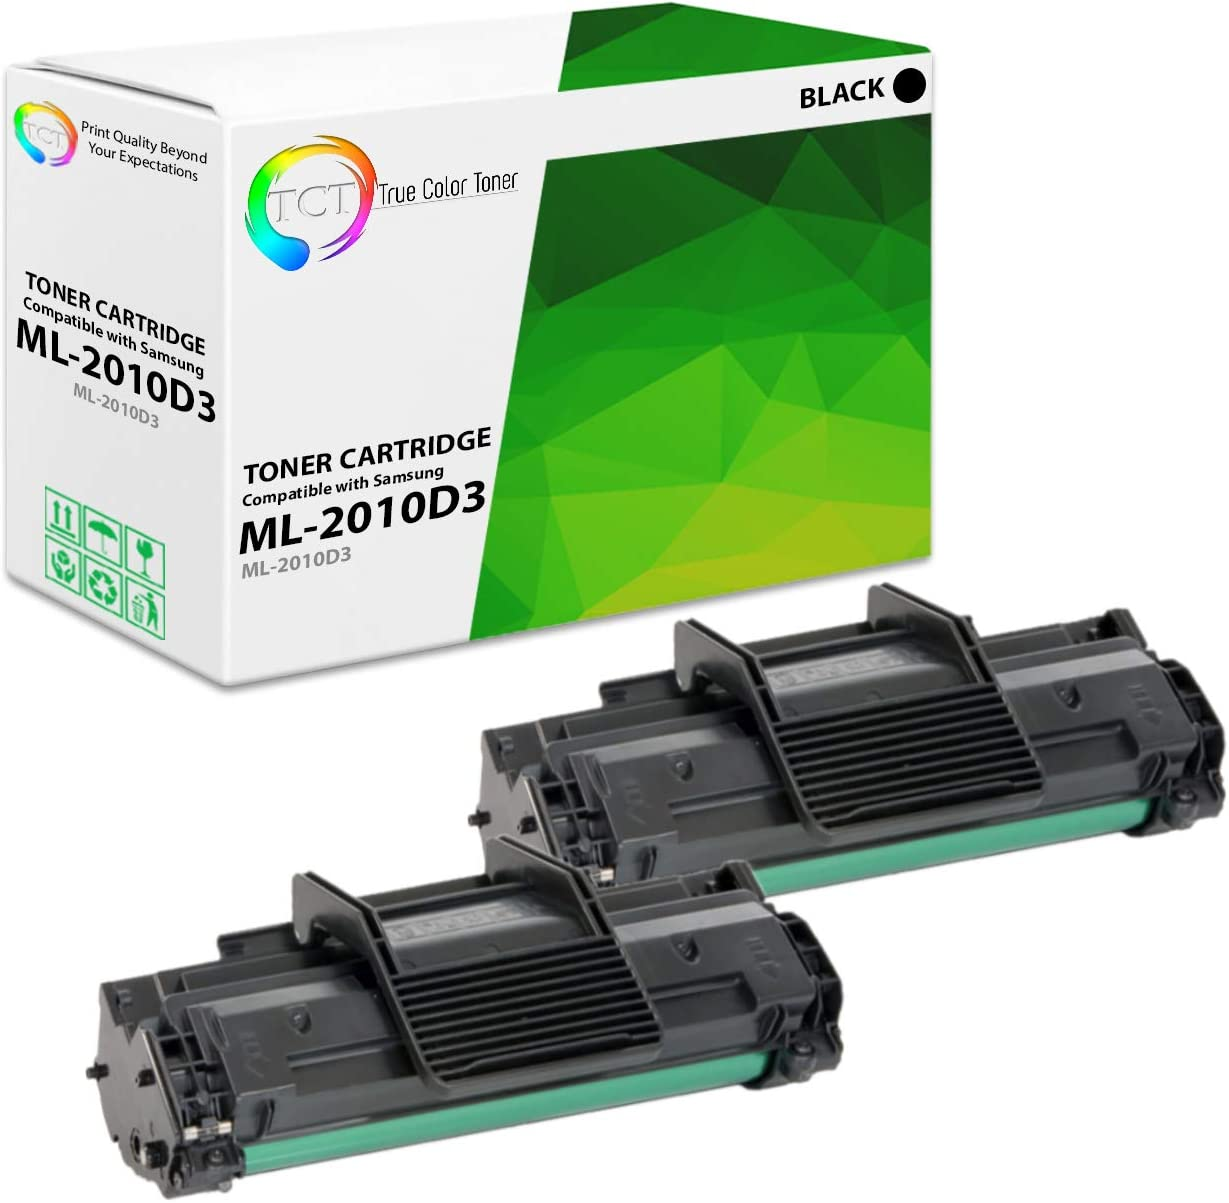 TCT Premium Compatible Toner Cartridge Replacement for Samsung ML-2010D3 Black Works with Samsung ML-2010 ML-2510 ML-2570 ML-2571N, SCX-4521F SCX-4521FG Printers (3,000 Pages) - 2 Pack